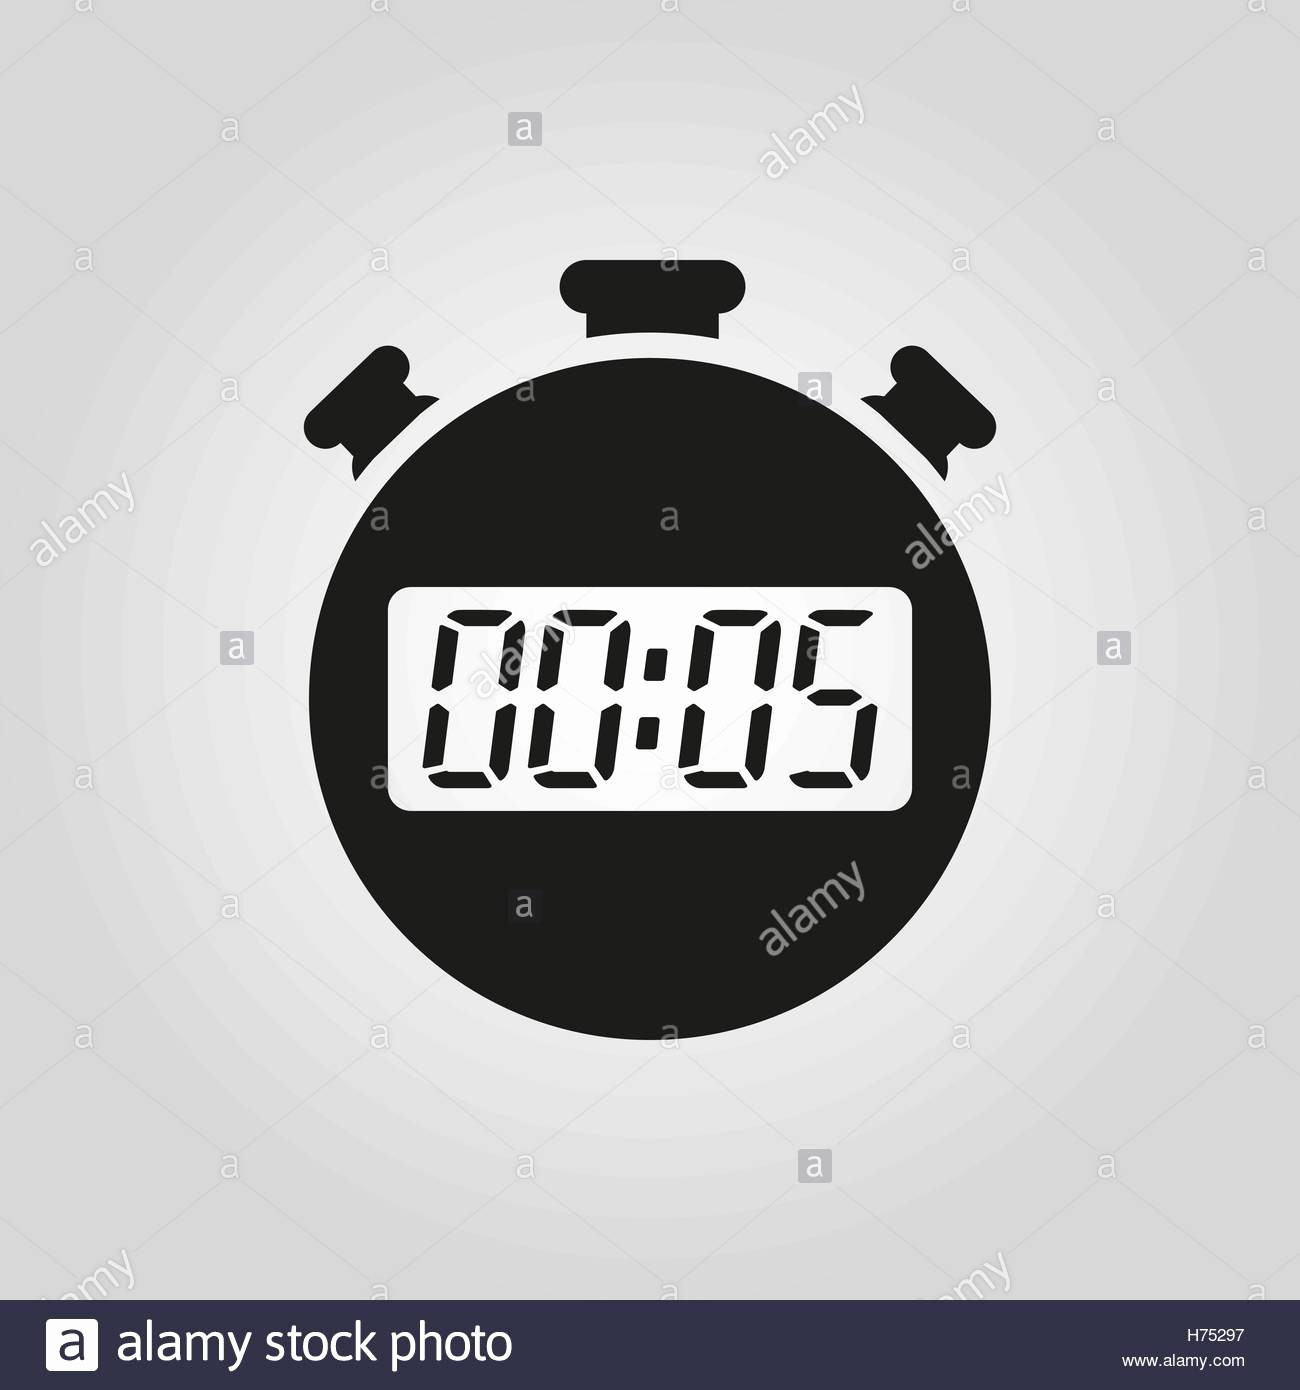 Set Stopwatch for 5 Minutes Best Of the 5 Seconds Minutes Stopwatch Icon Clock and Watch